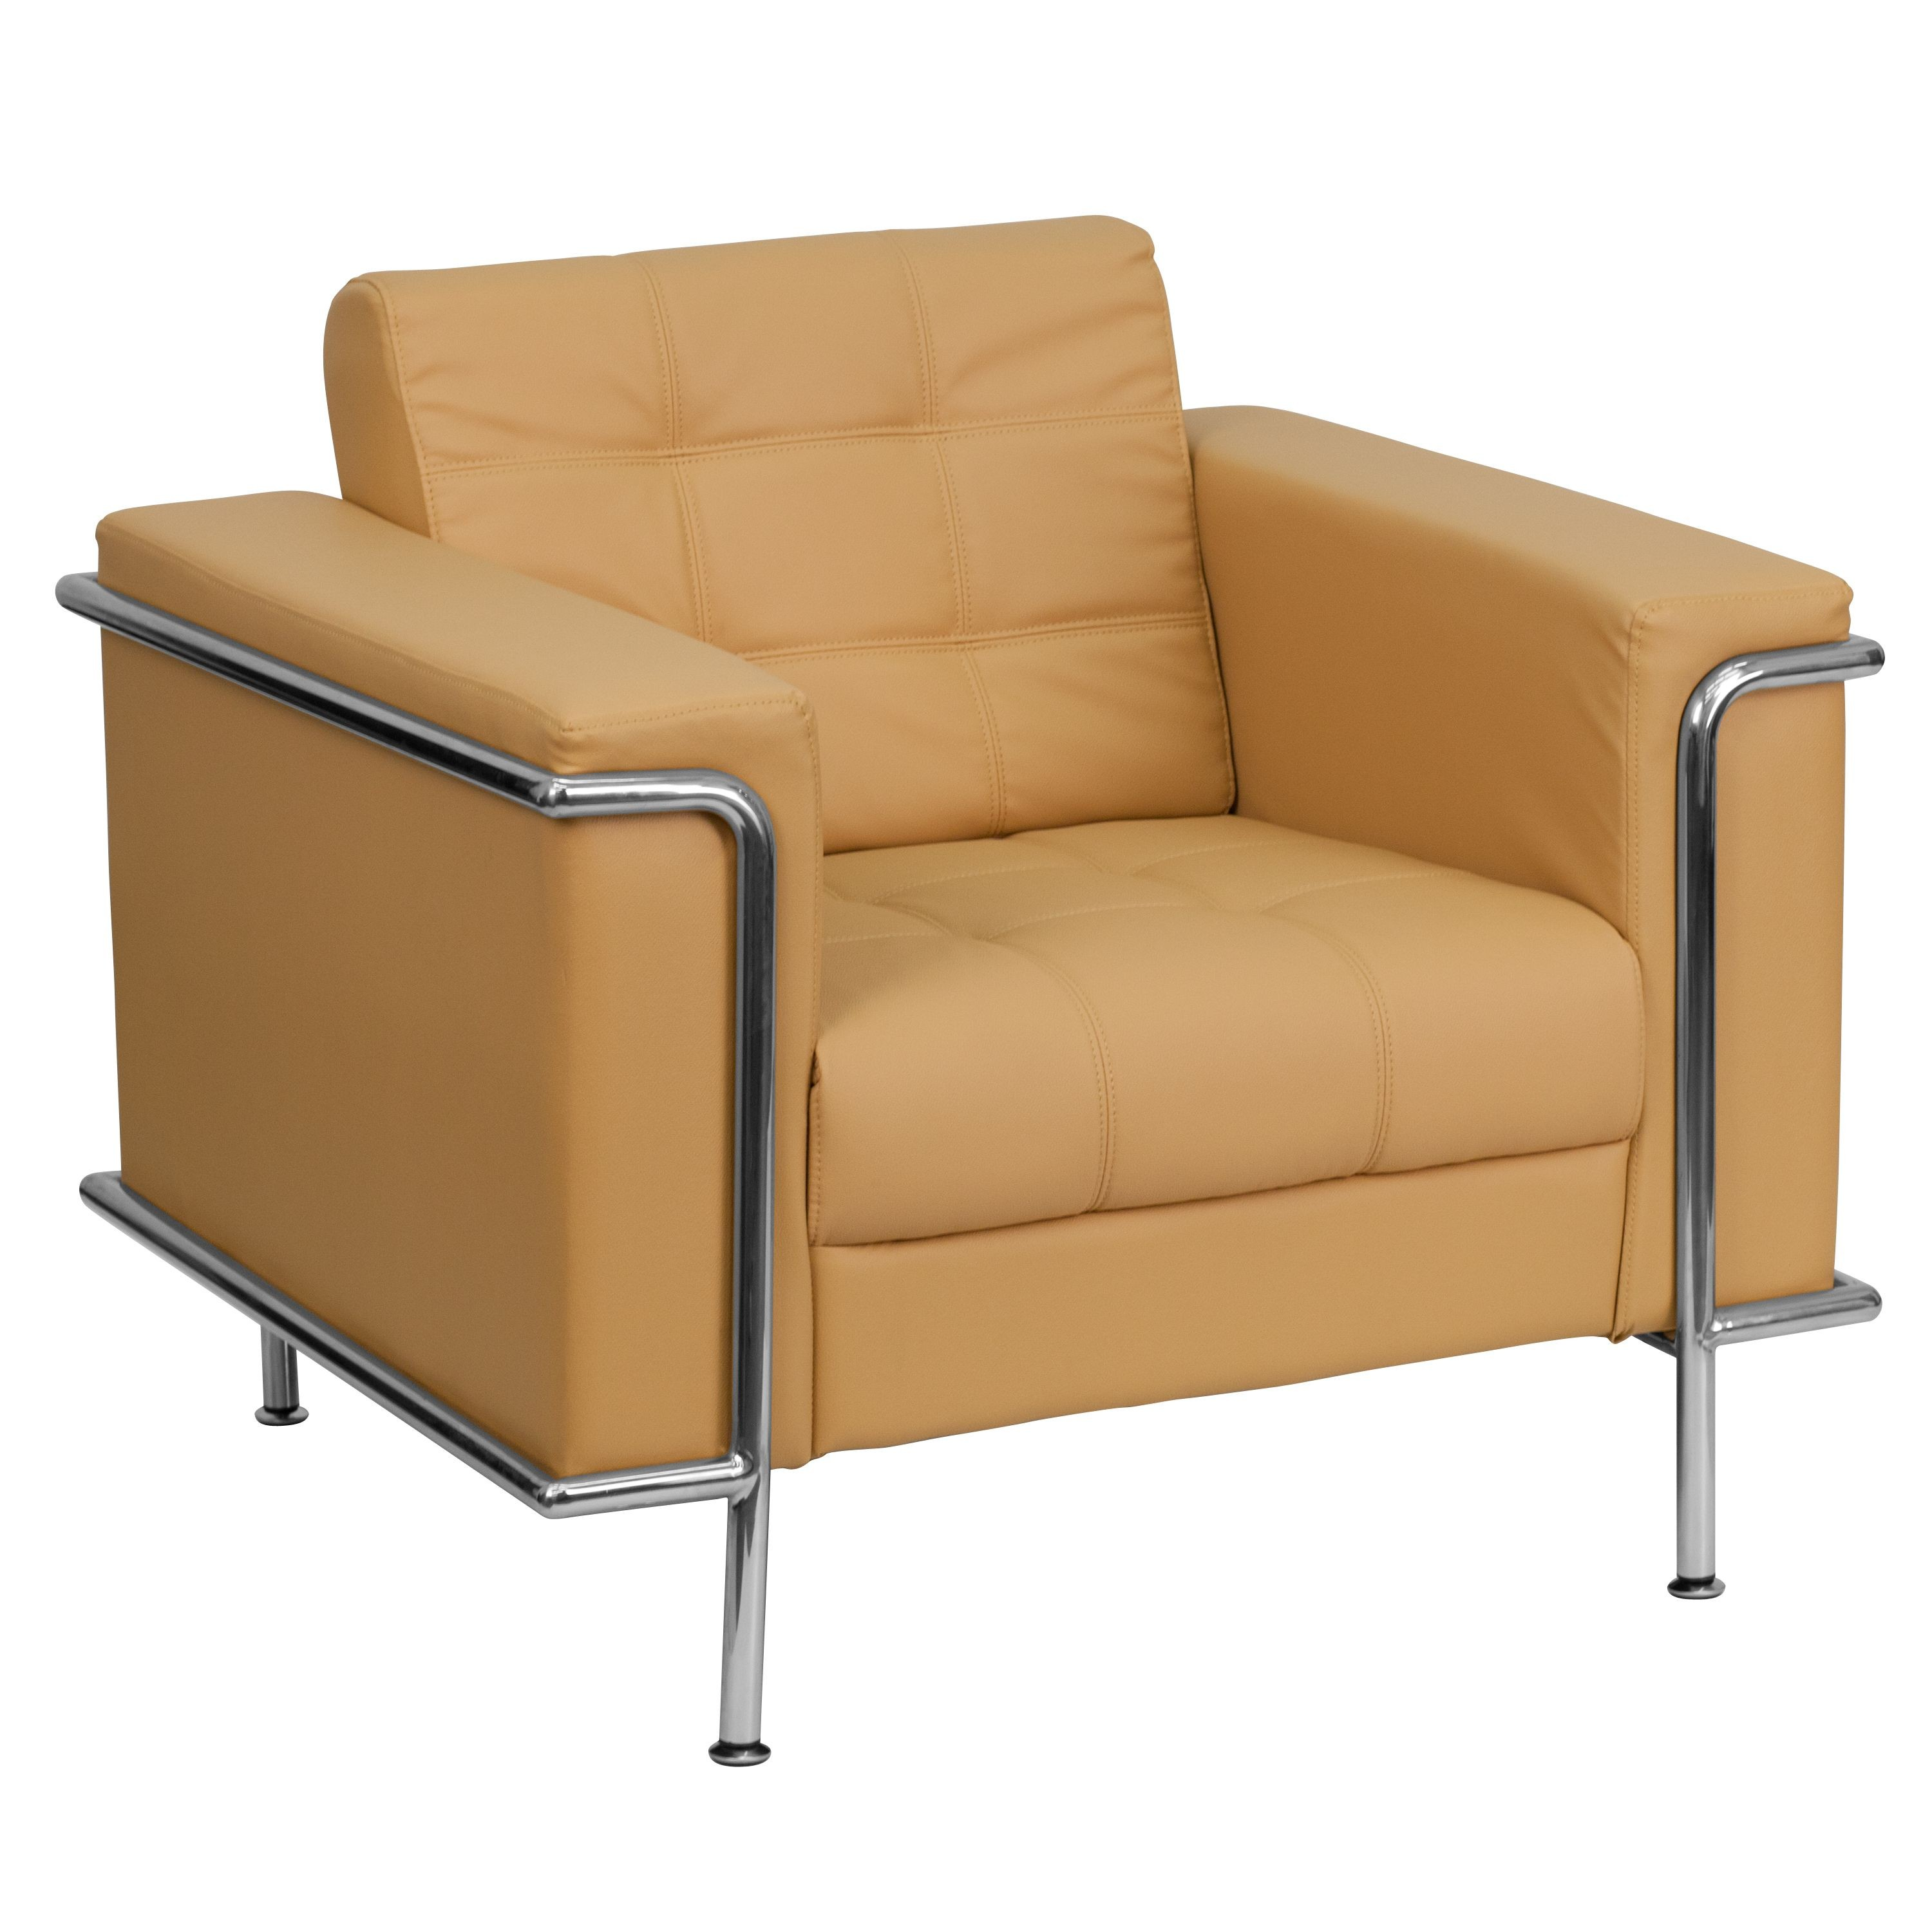 Lesley Series Contemporary Light Brown Leather Chair with Encasing Frame